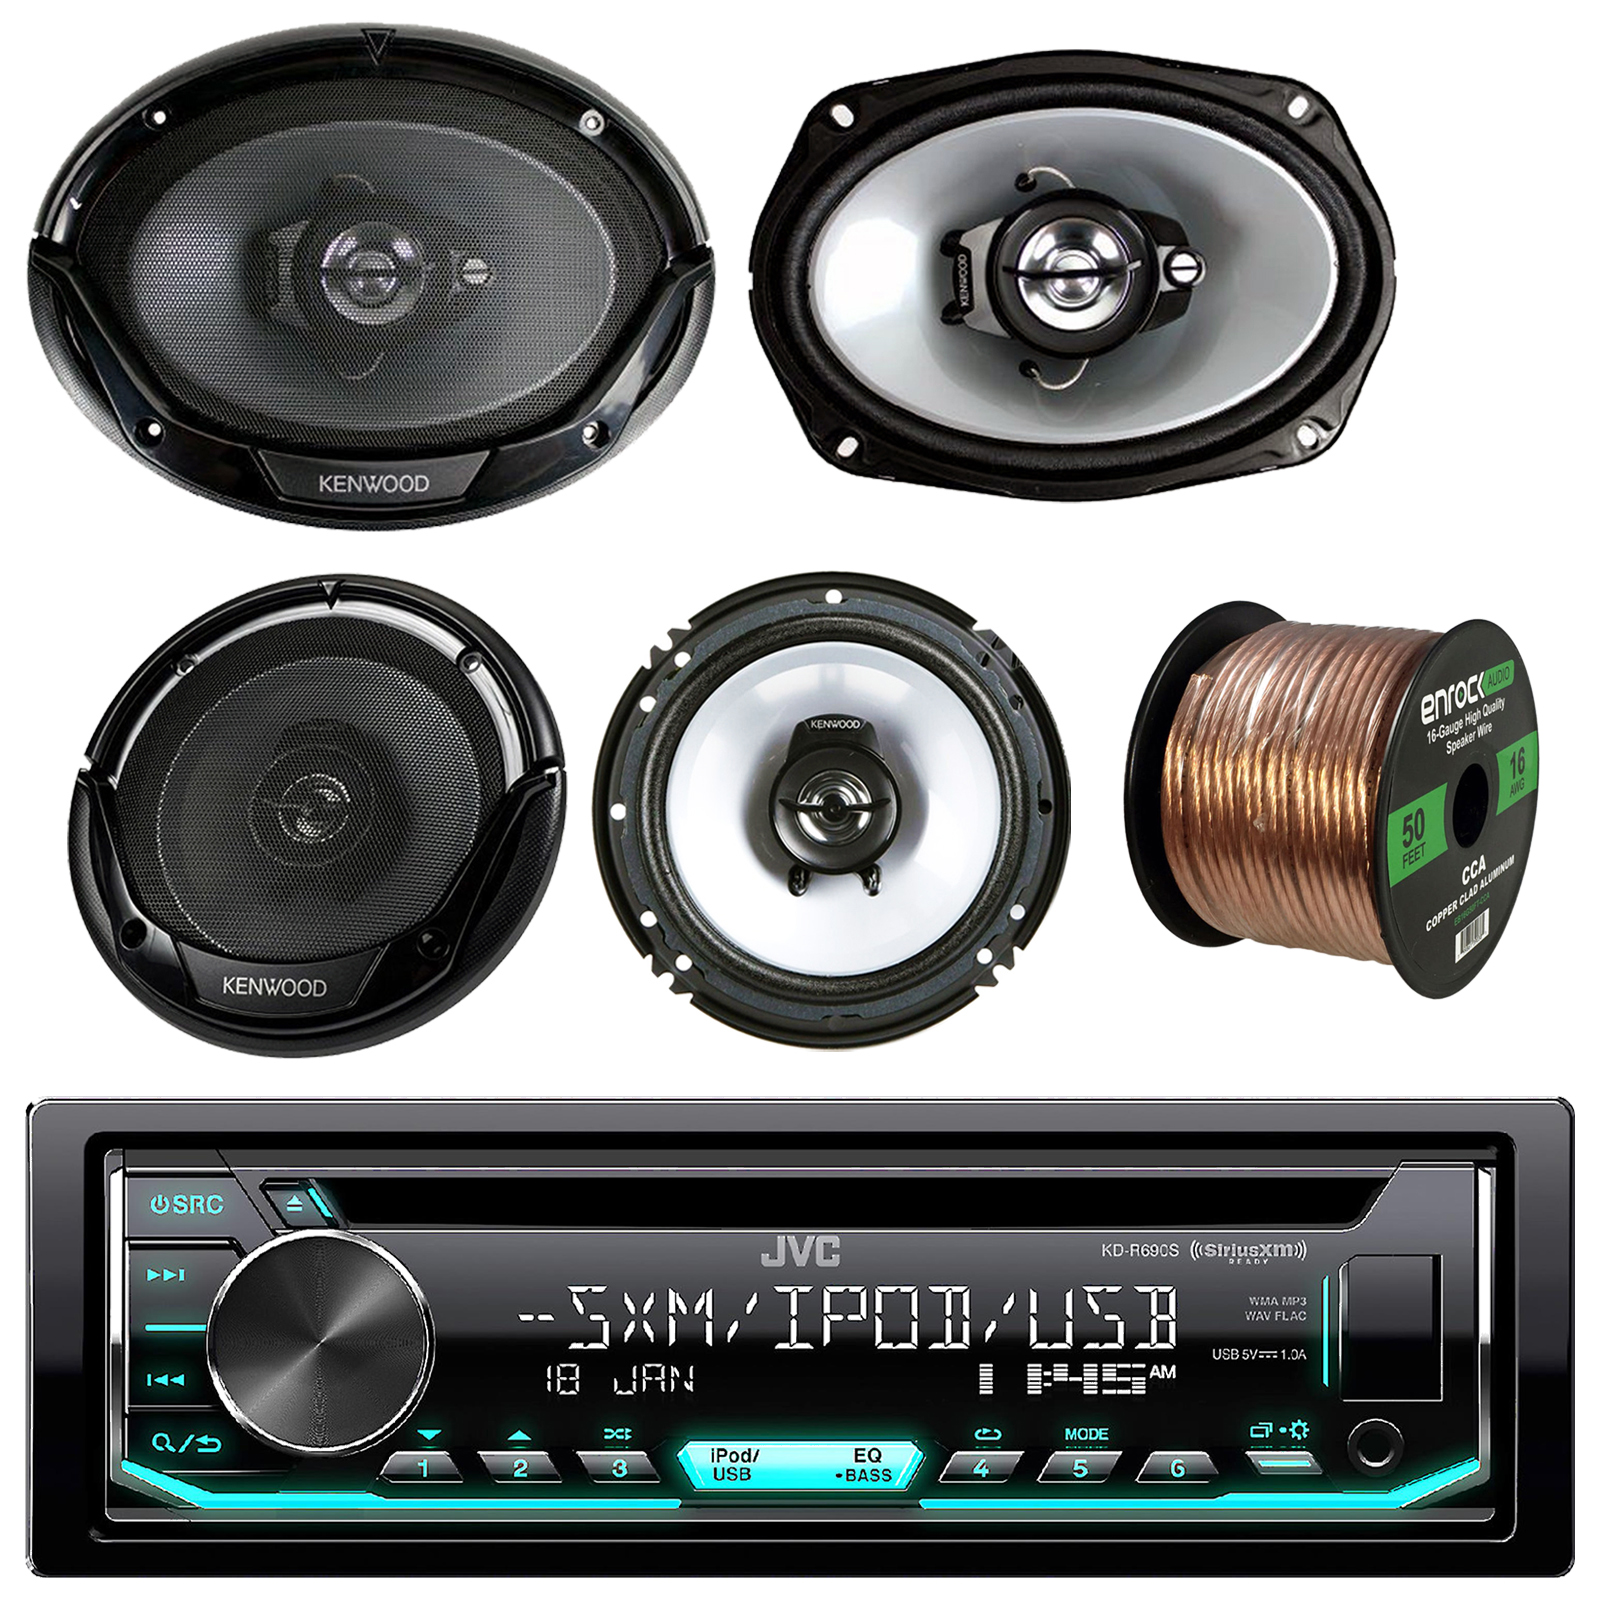 Jvc Car Cd Usb Stereo Kenwood 6x9 And 65 Speakers 18gauge 50ft